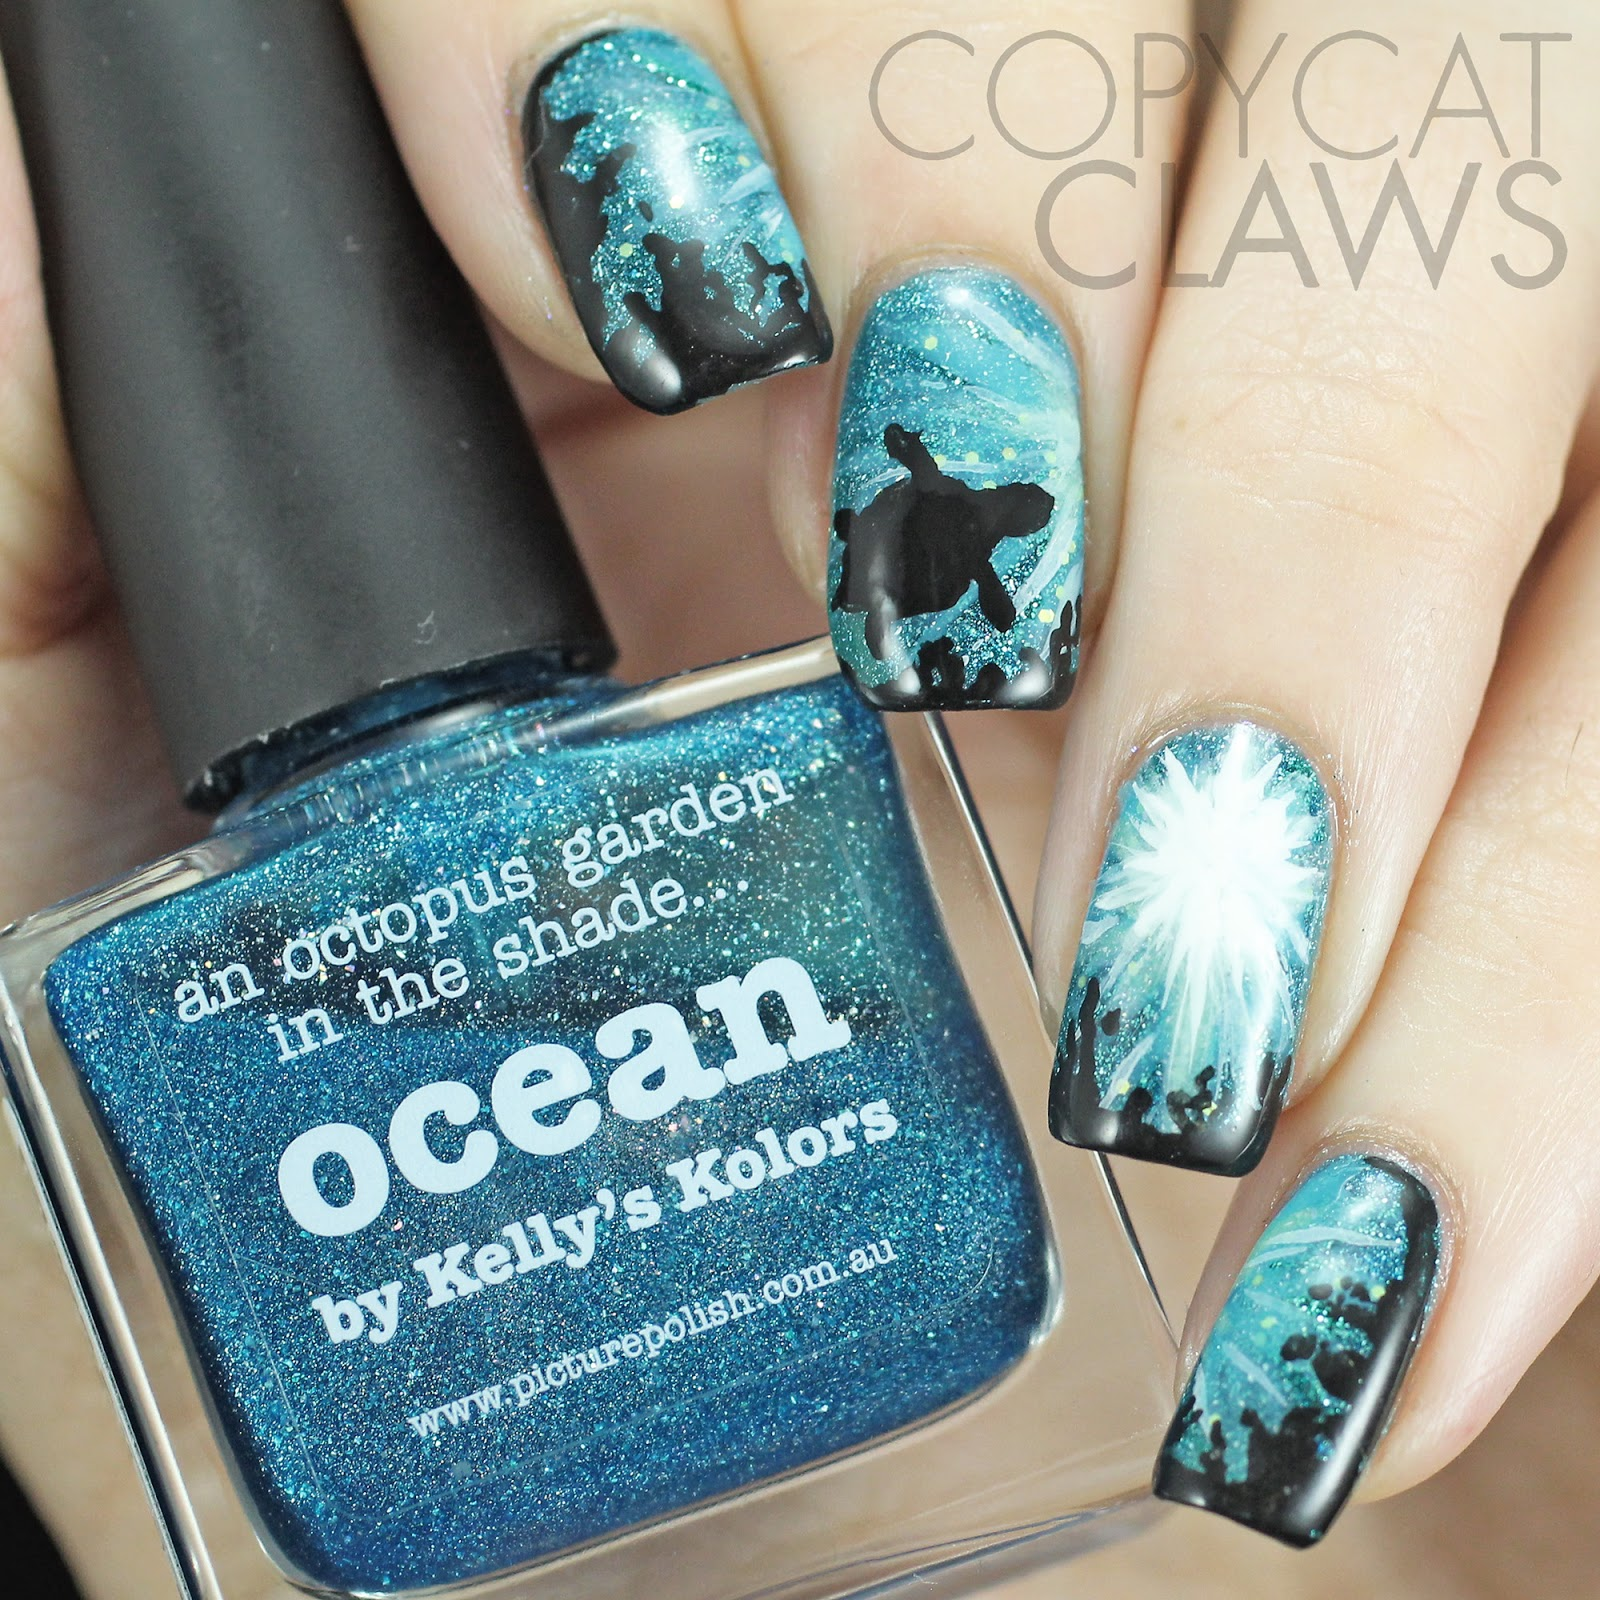 Copycat claws march 2015 the digit al dozen does nature day 1 sea turtle nail art prinsesfo Images